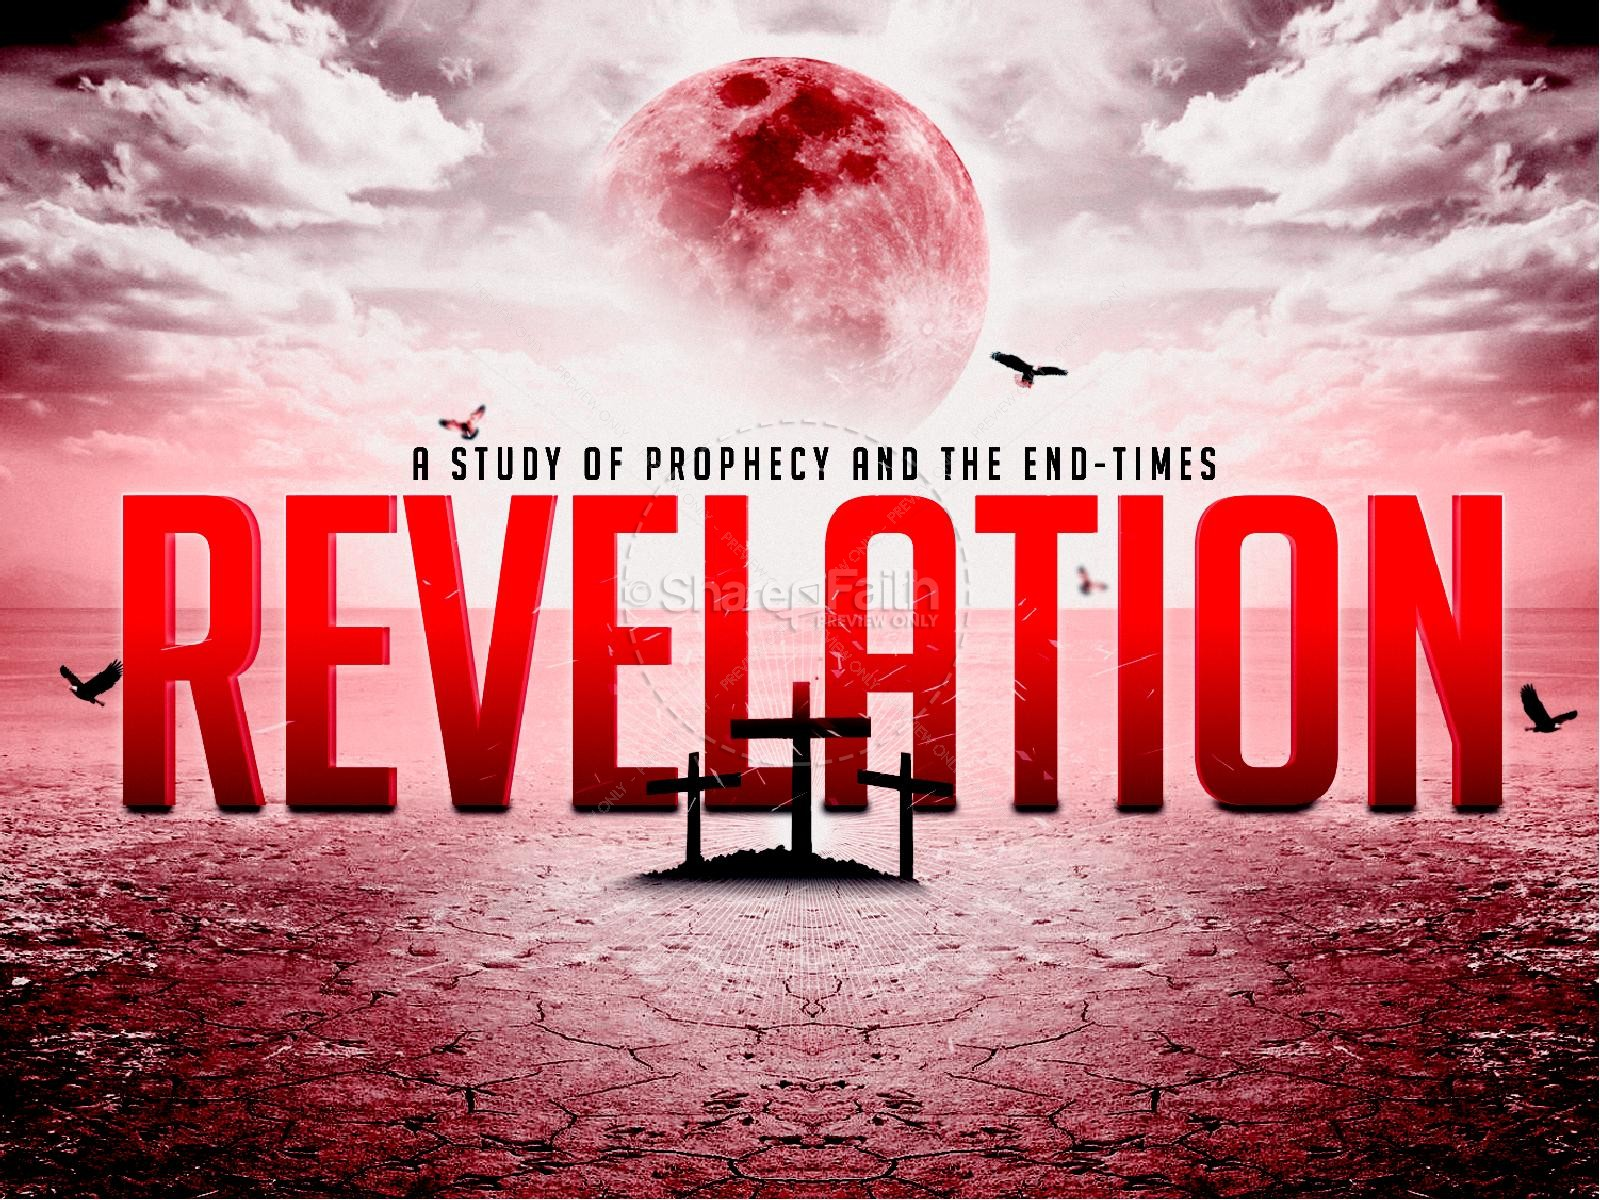 Book of revelation end times prophecy list